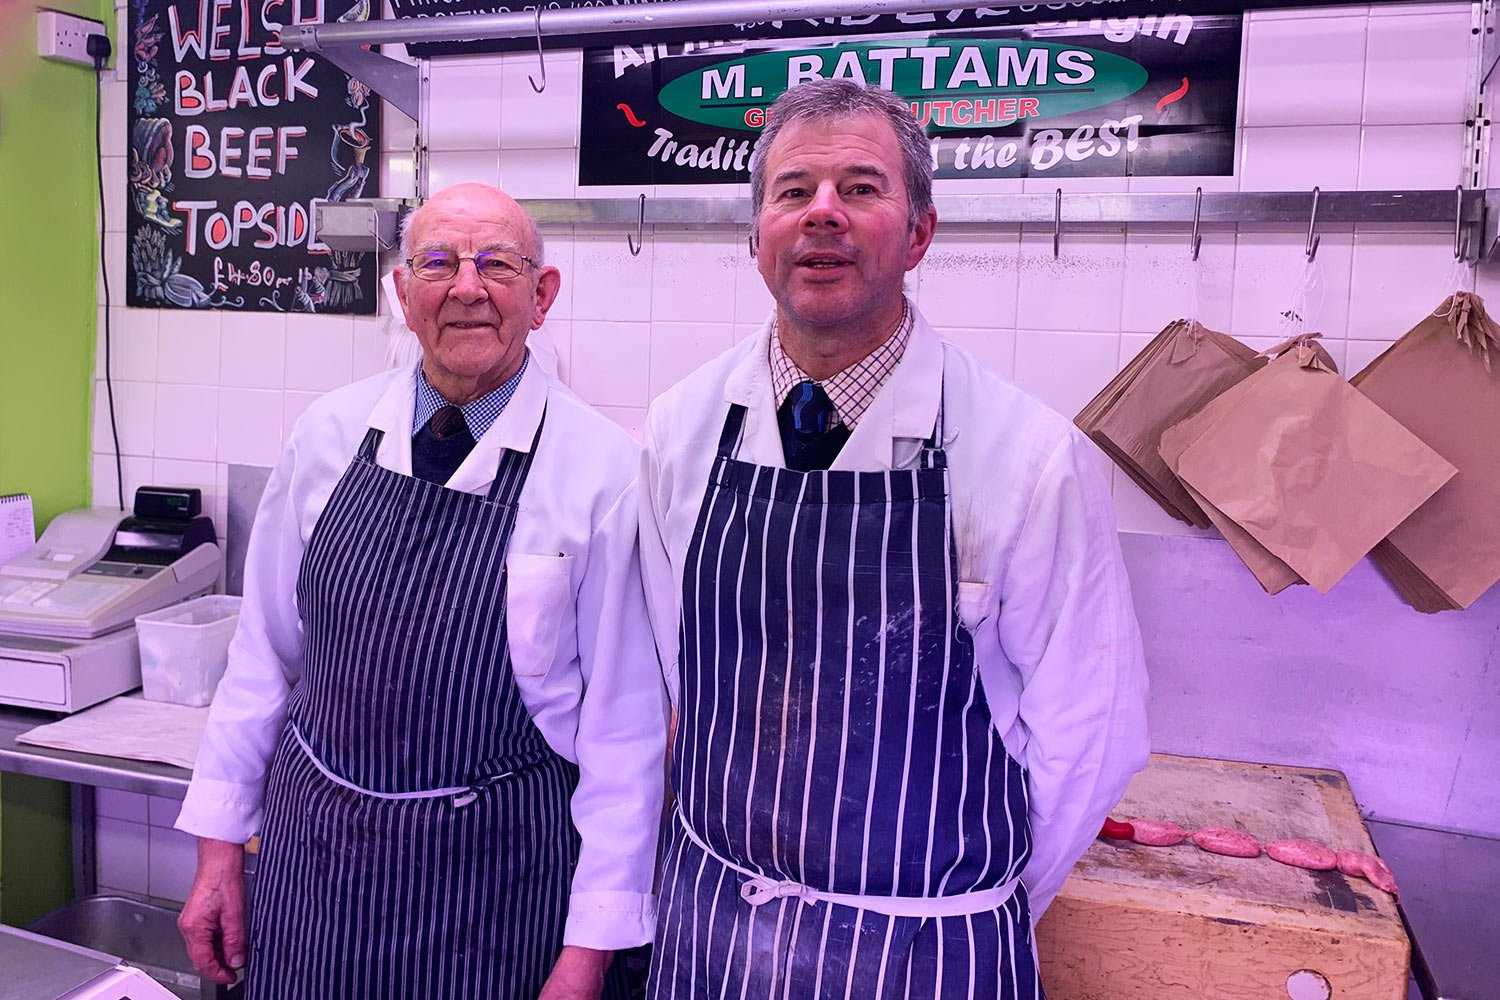 Battams Butchers Oswestry